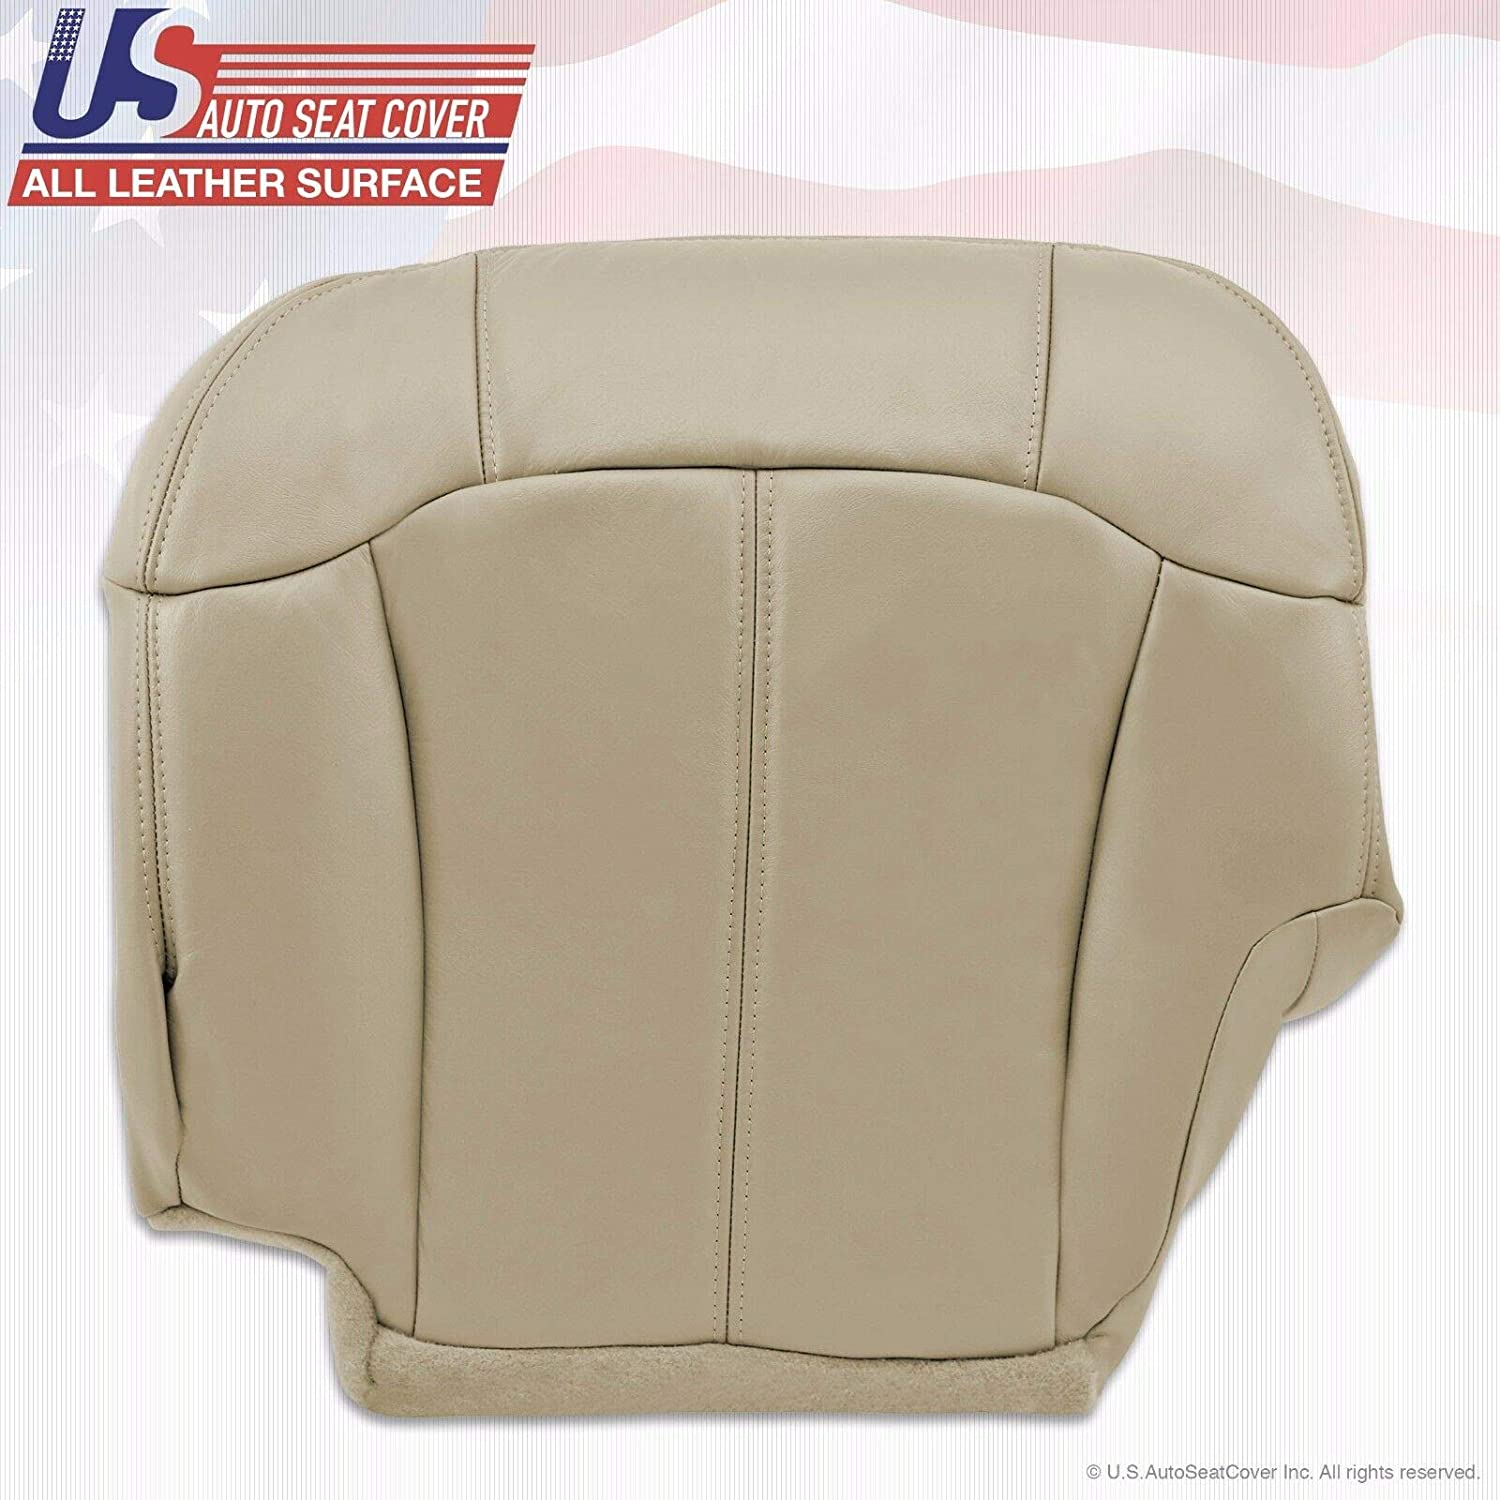 1999 2000 2001 2002 Chevy Leather seat Max 61% OFF Suburban Tahoe Memphis Mall Upholstery